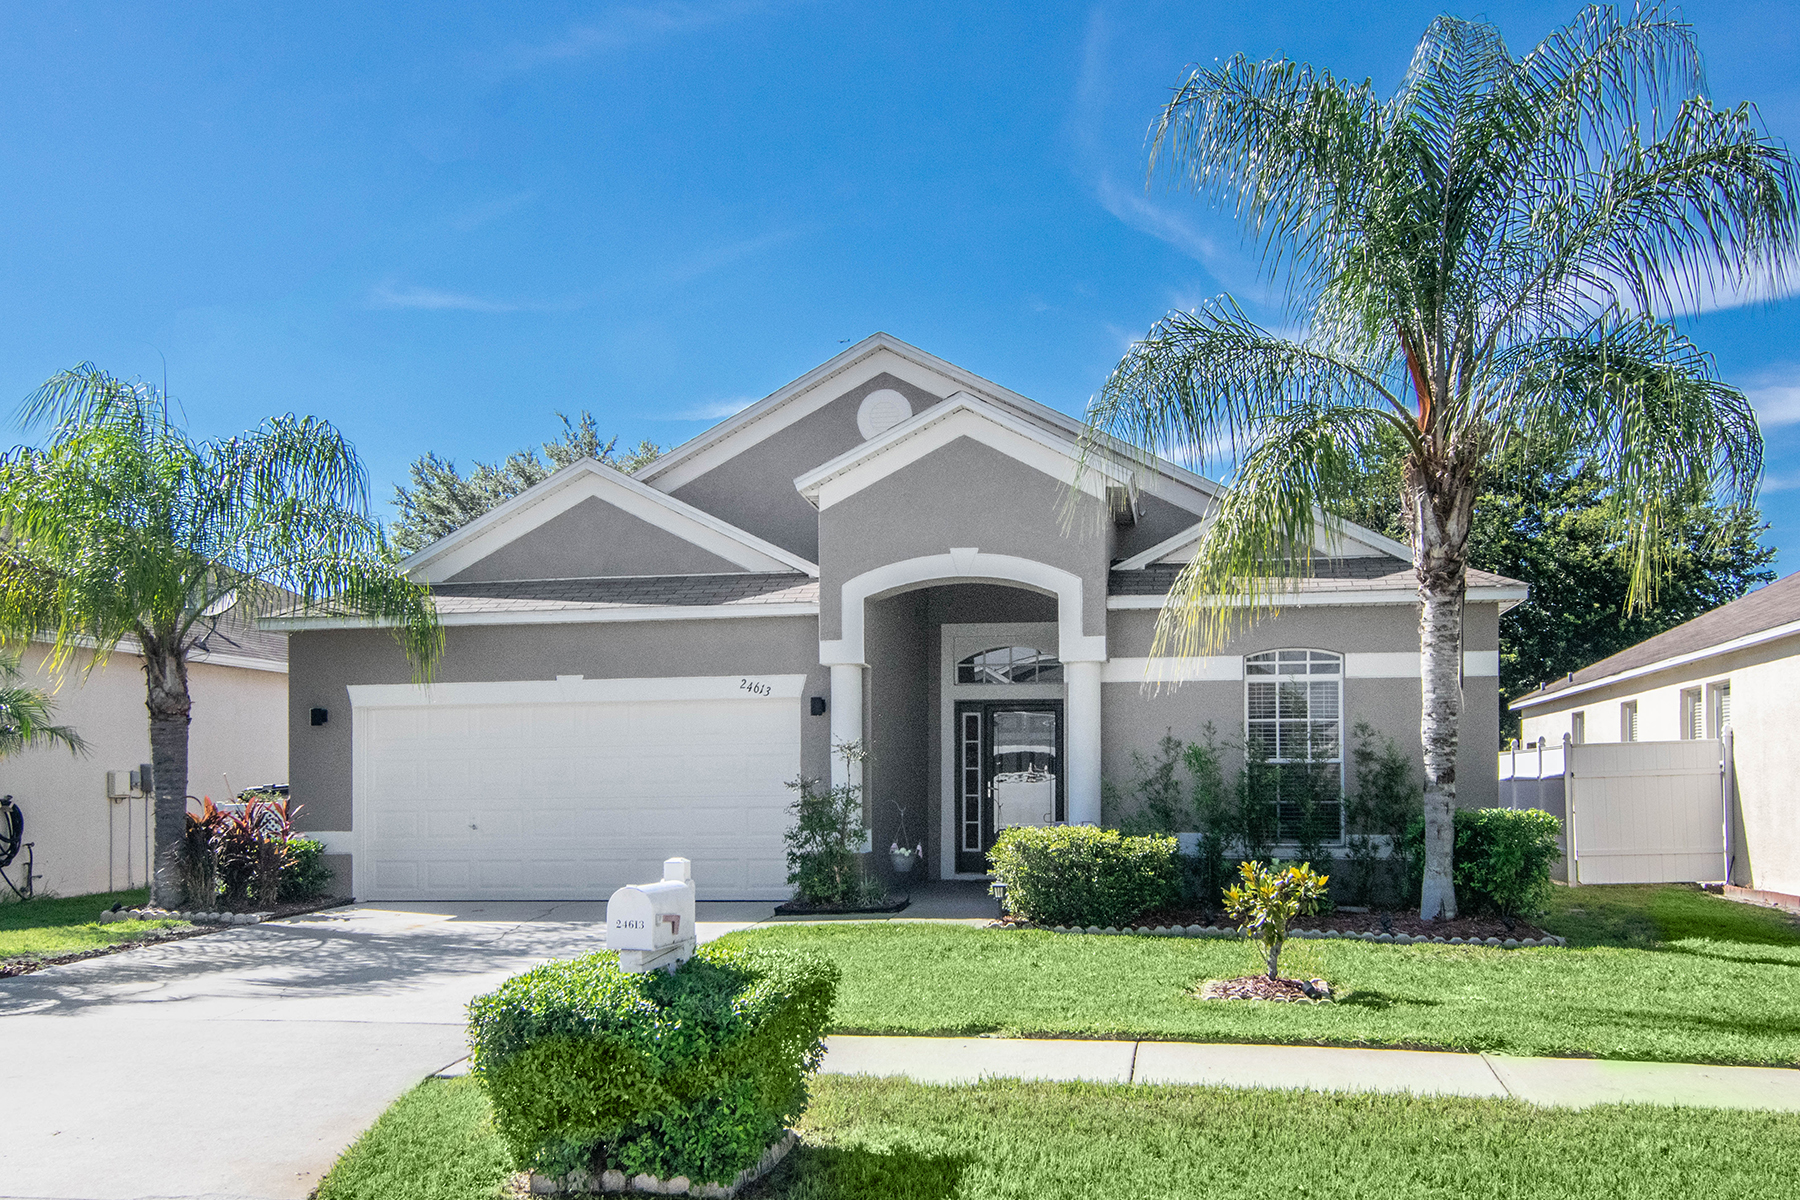 Single Family Homes for Sale at LUTZ 24613 Siena Dr Lutz, Florida 33559 United States